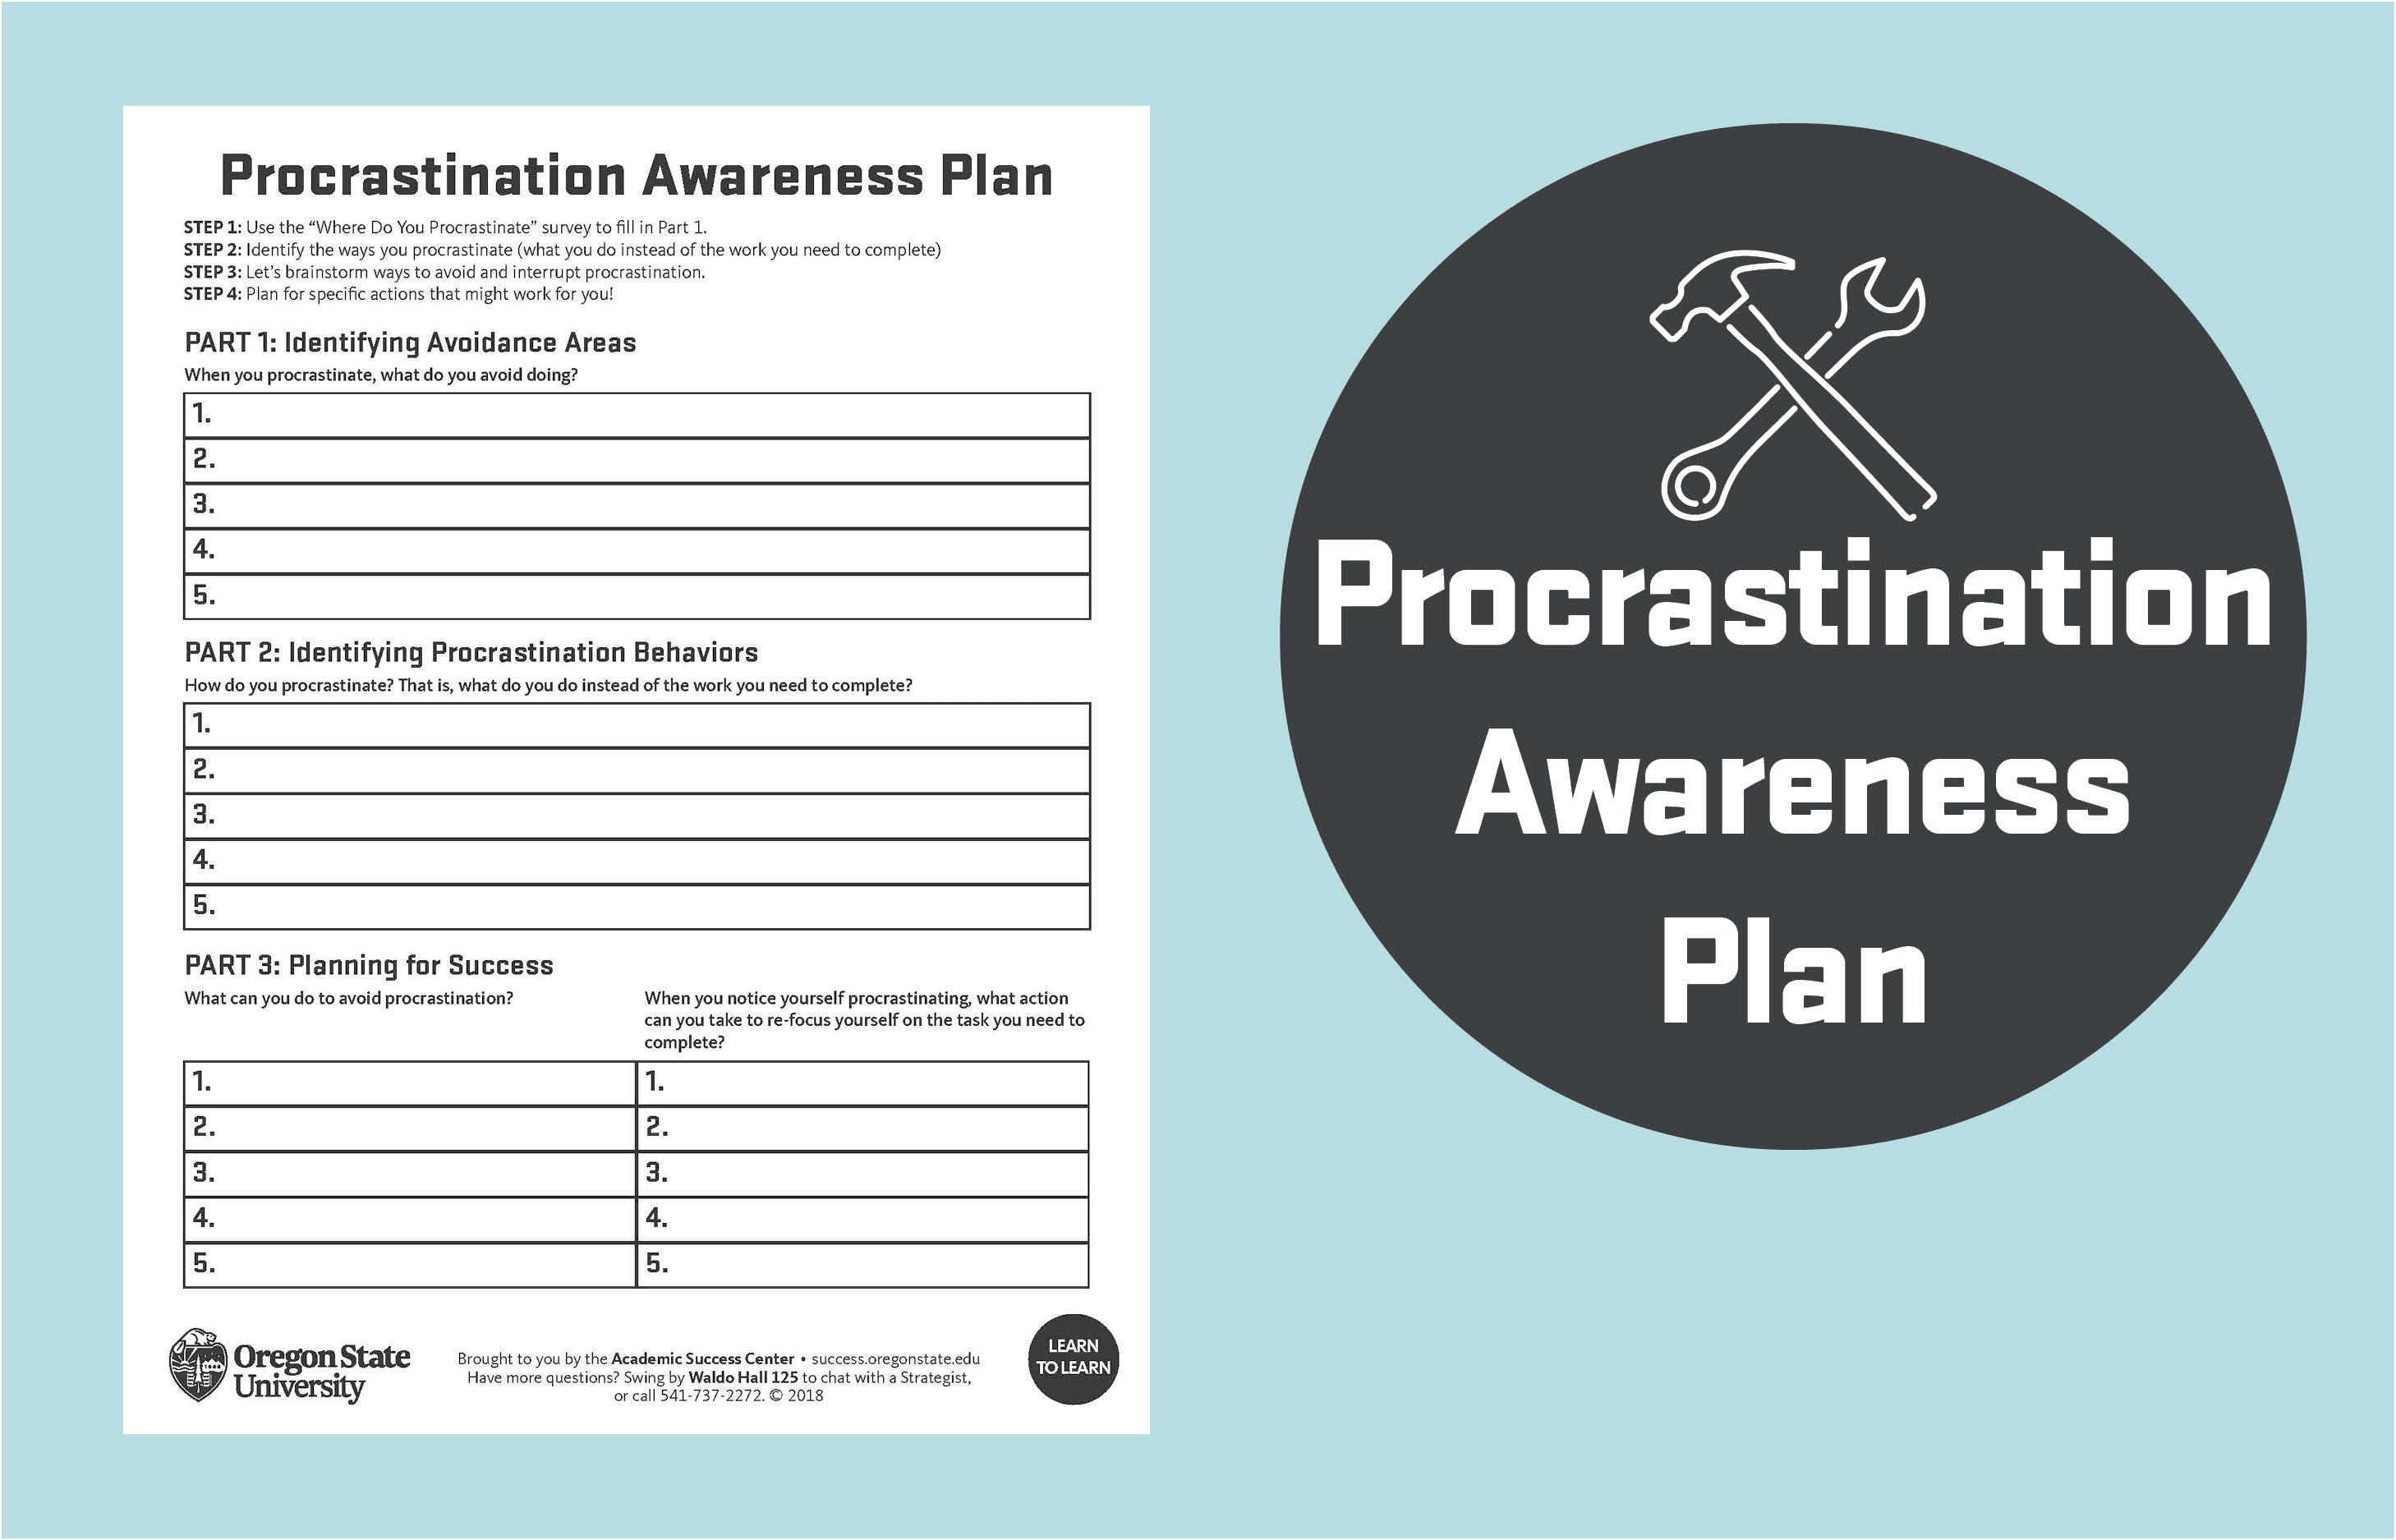 Procrastination awareness plan